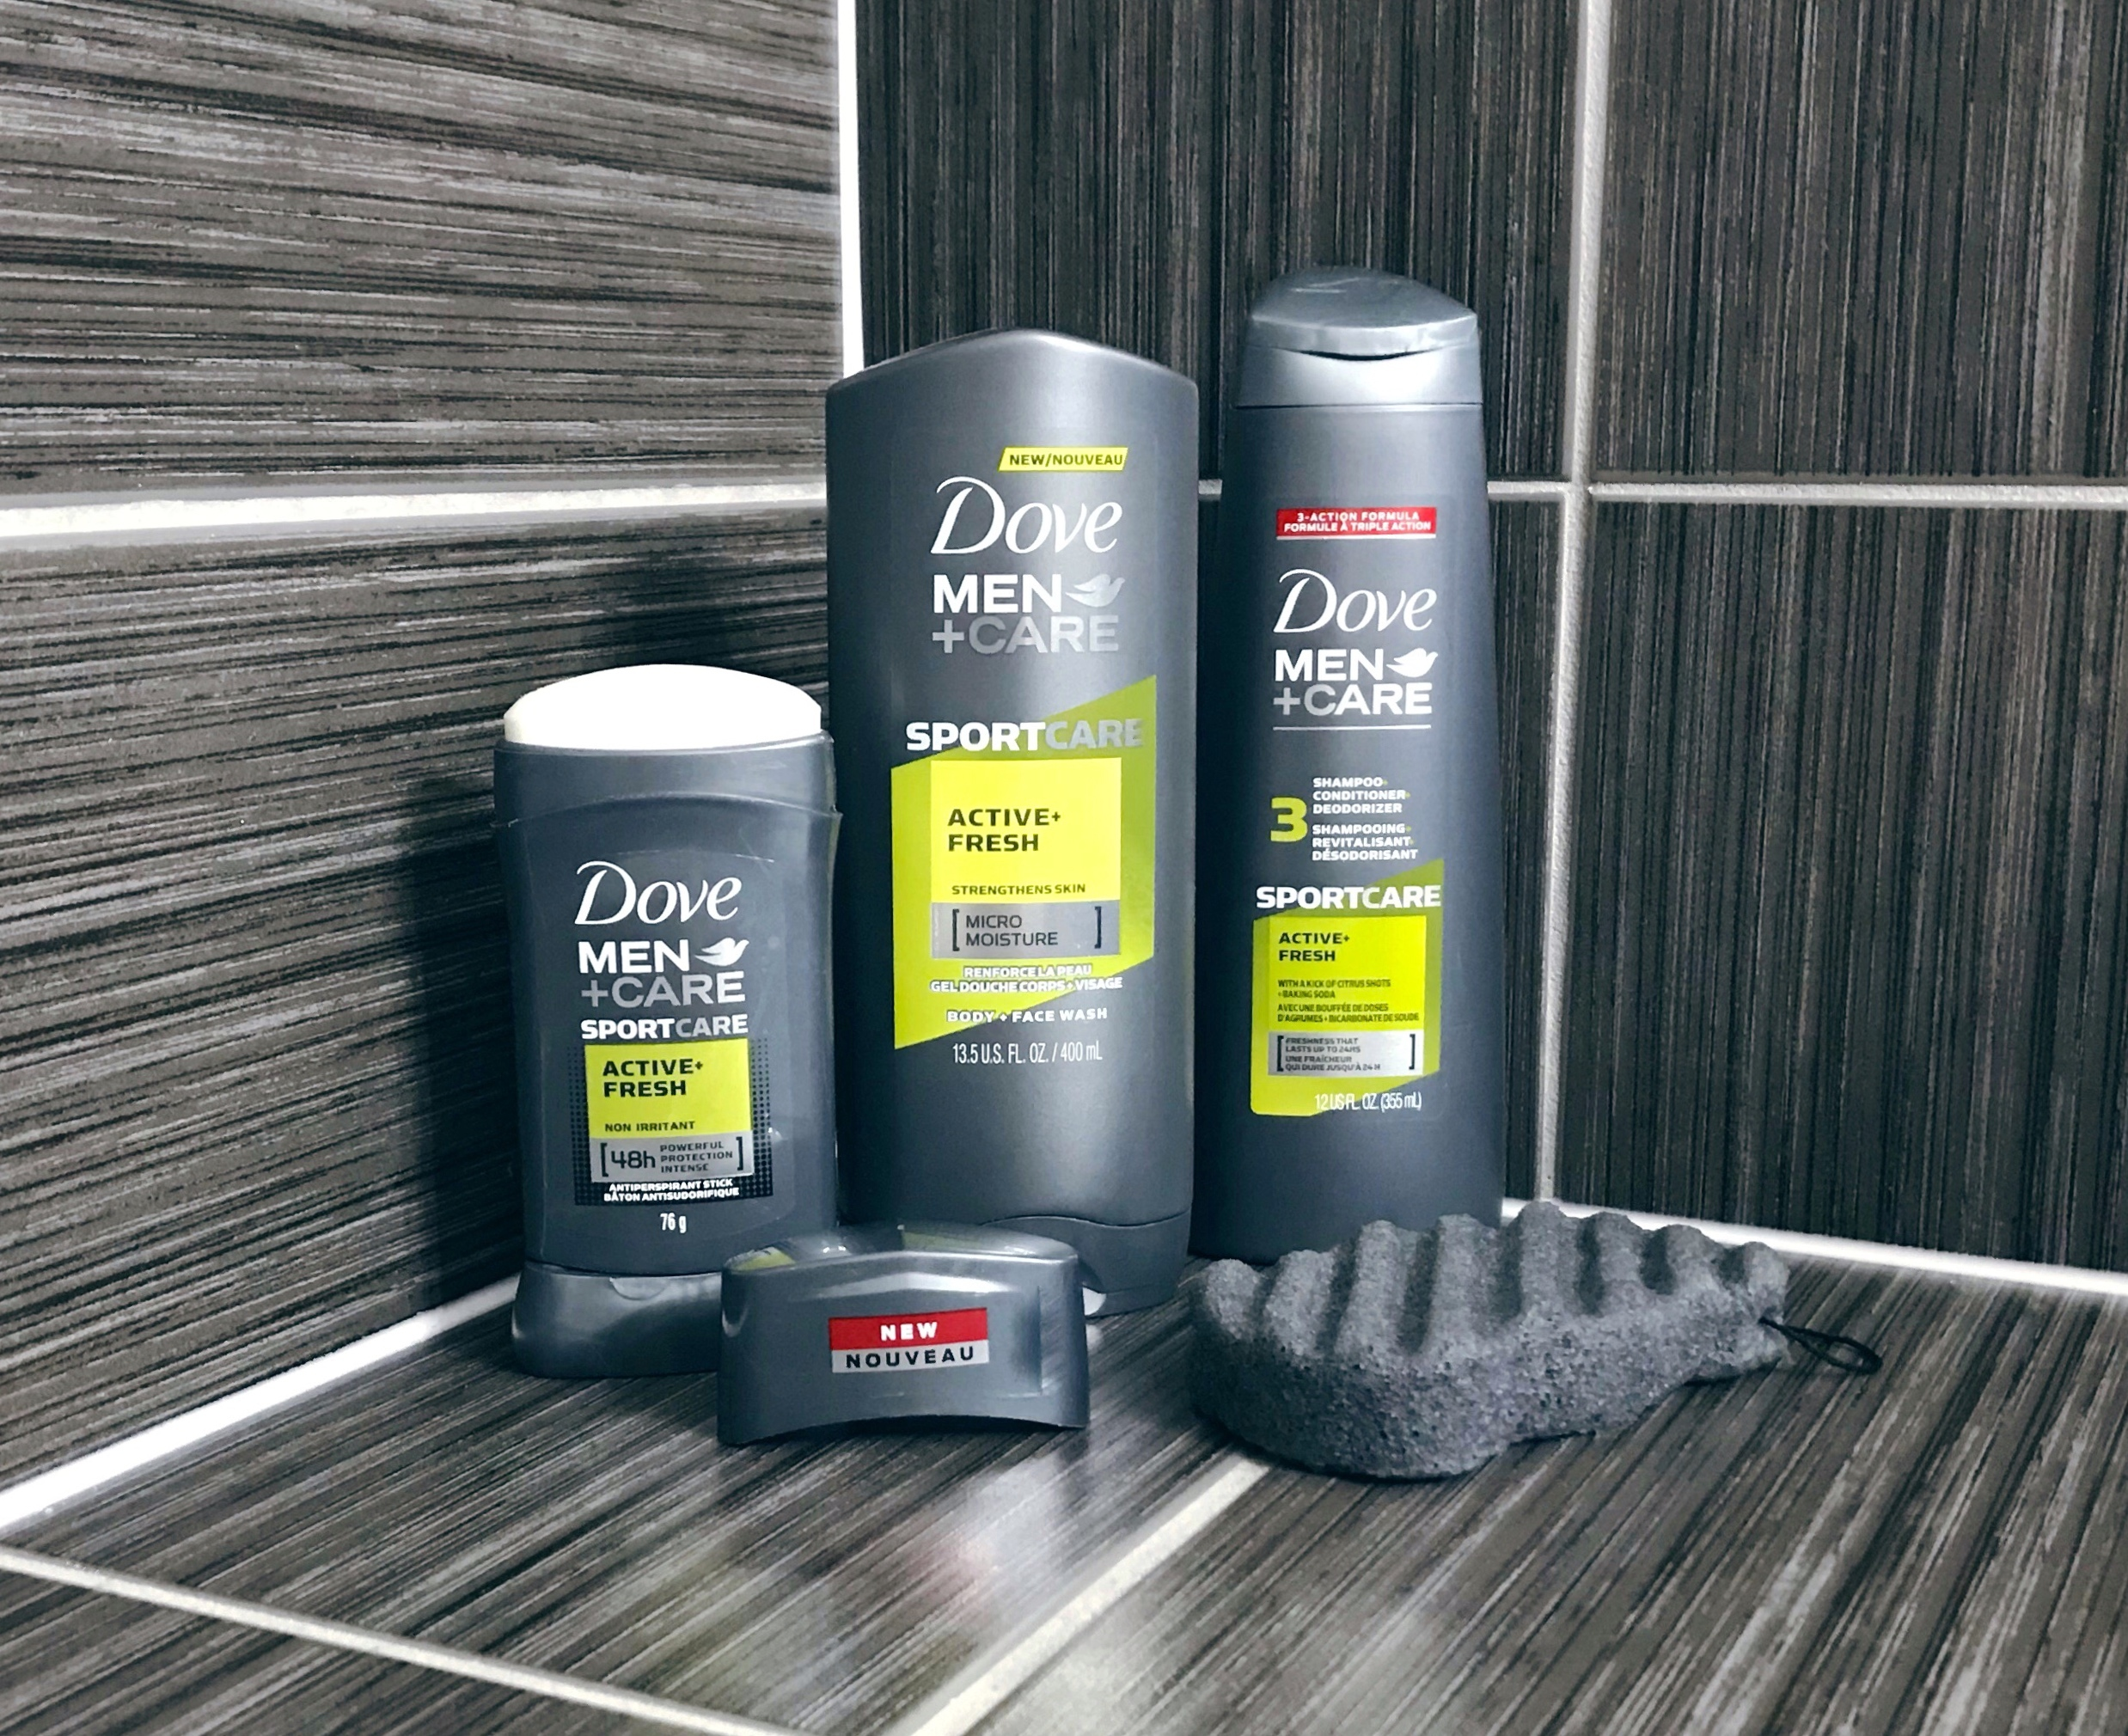 Dove Skin Care Products